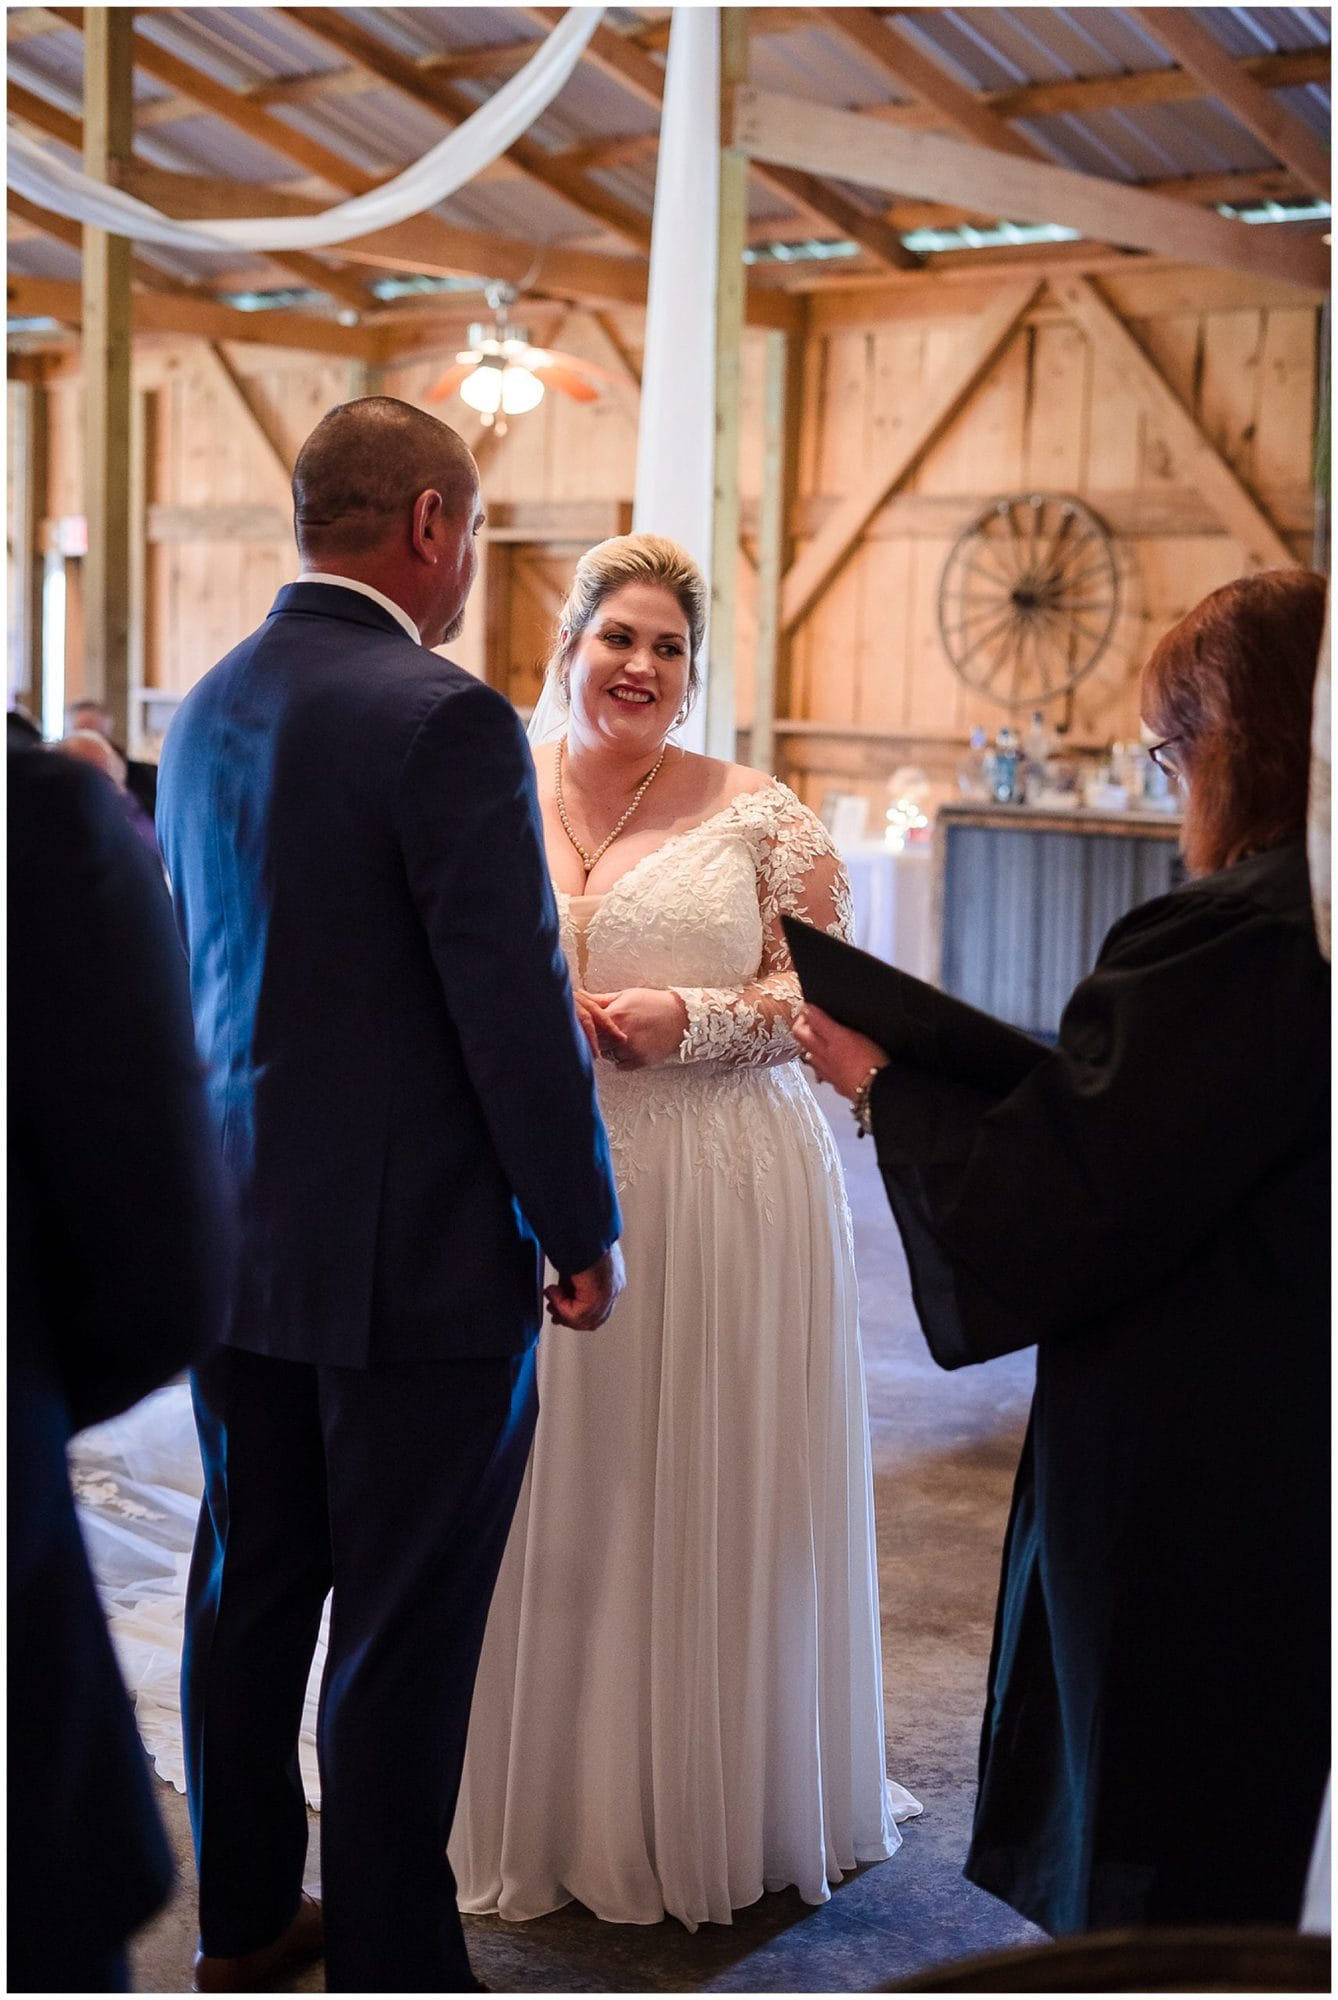 The Barn at TH Farm wedding ceremony